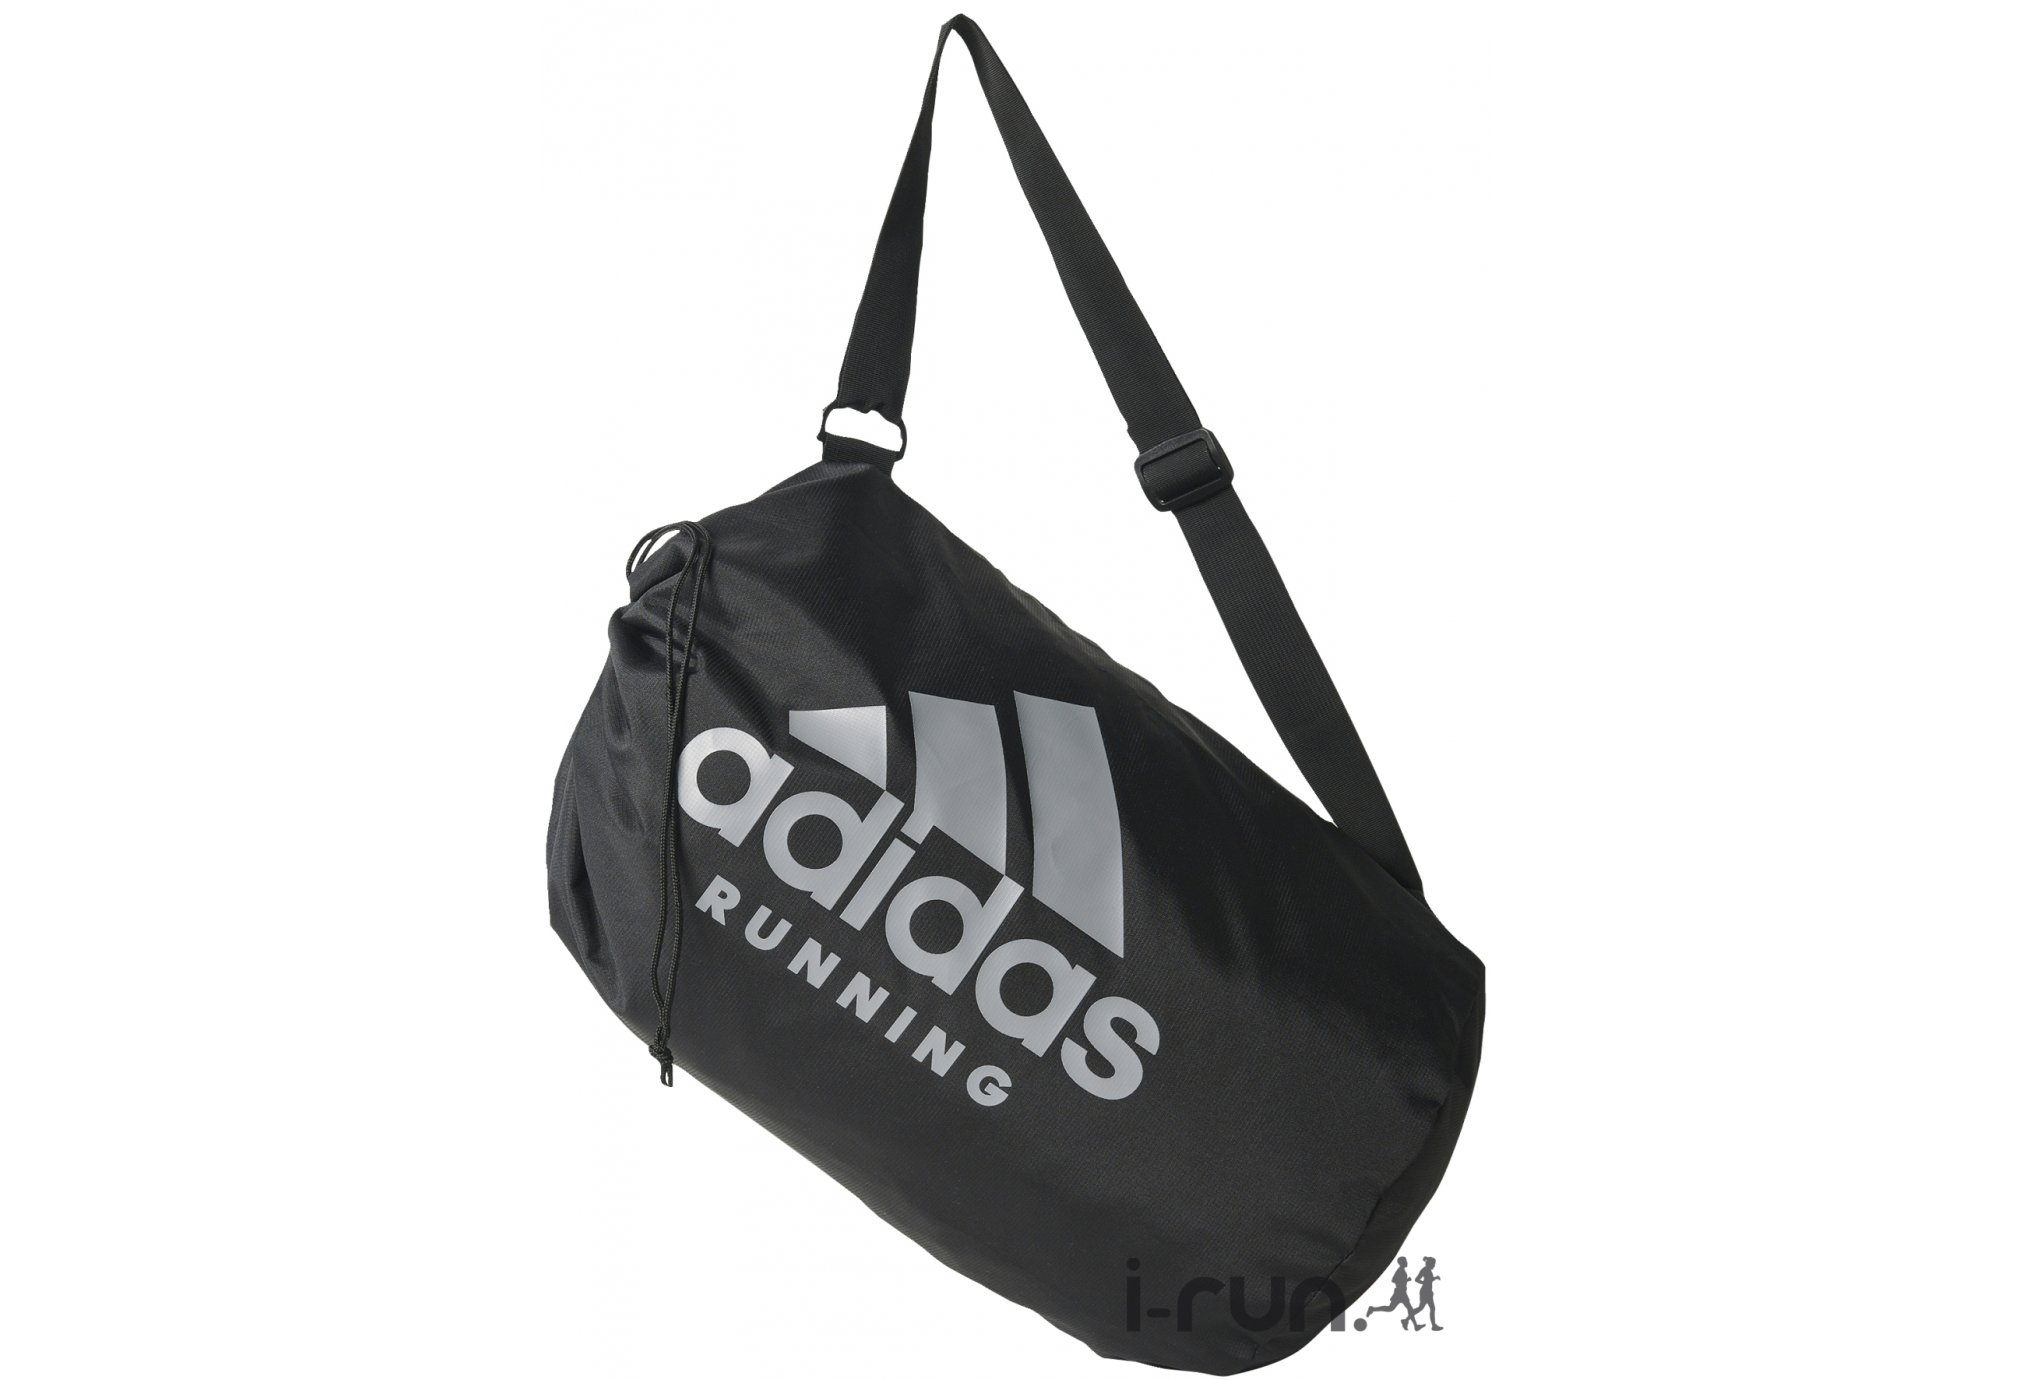 uag running adidas running sac de sport. Black Bedroom Furniture Sets. Home Design Ideas